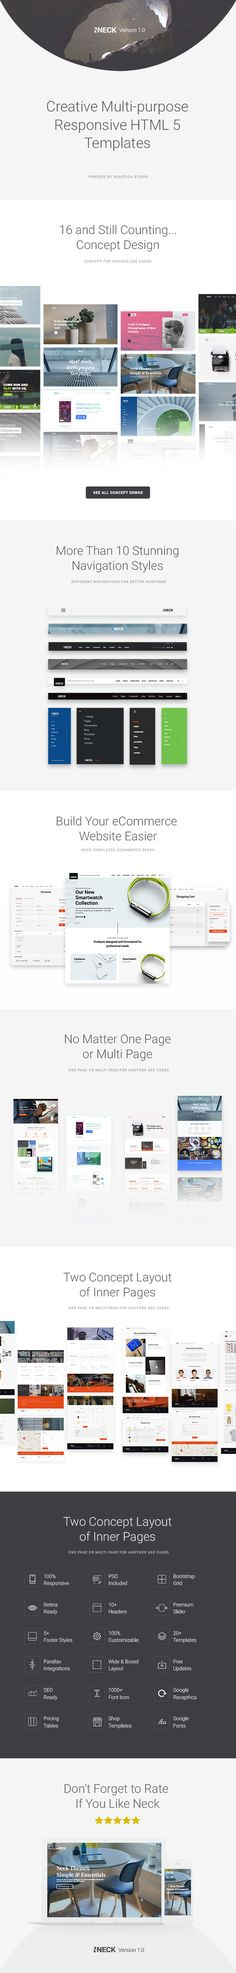 Enjoy our second product, multipurpose themes NECK! check the link : https://themeforest.net/item/neck-creative-multipurpose-responsive-html5-templates/19439776?s_rank=1